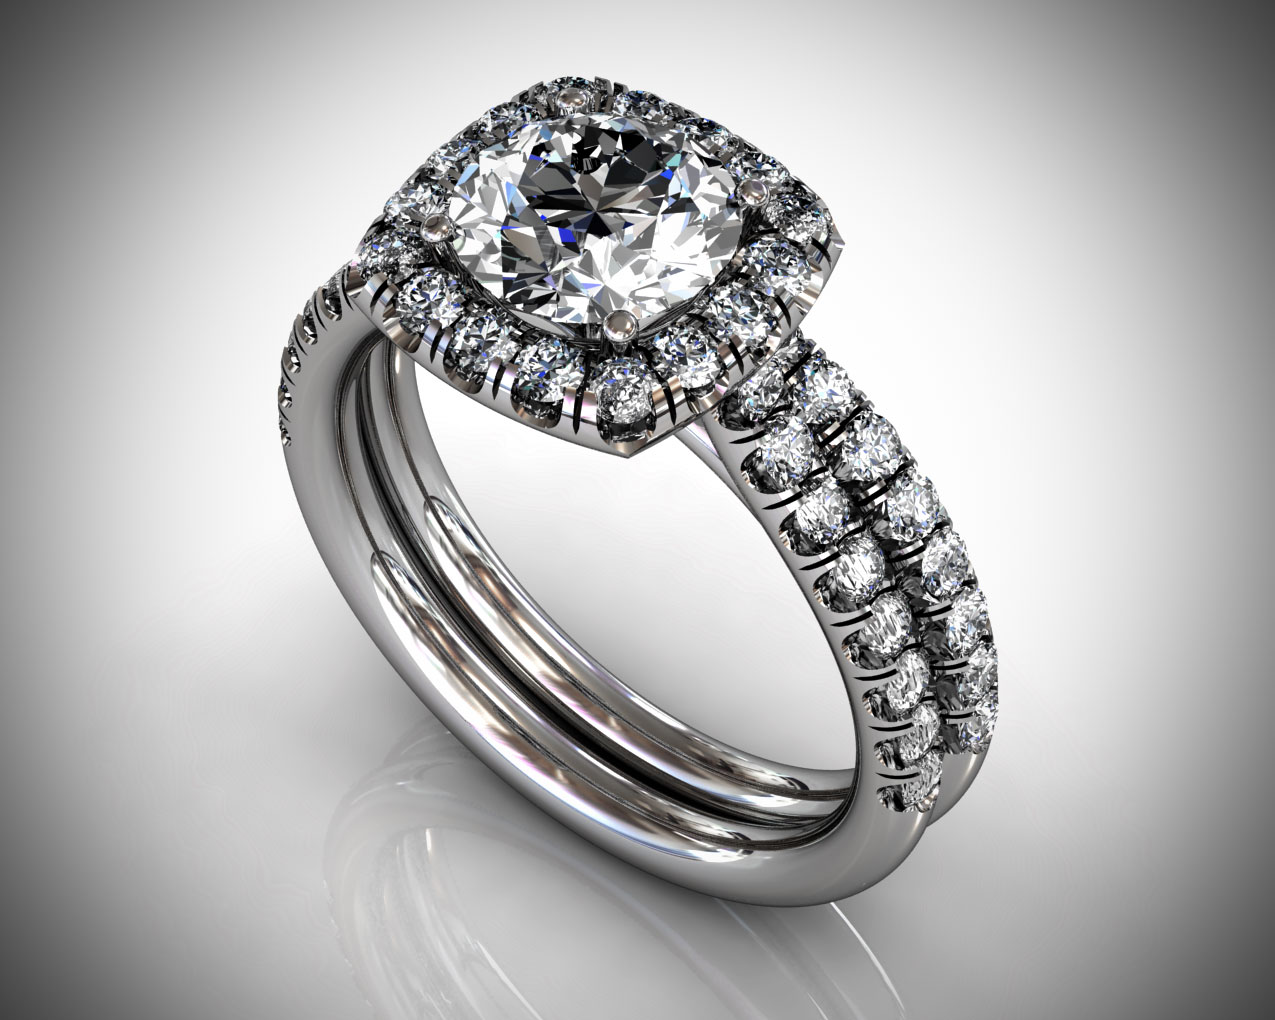 Diamond Halo Engagement Ring - SBG Jewelry Store - Wedding.com